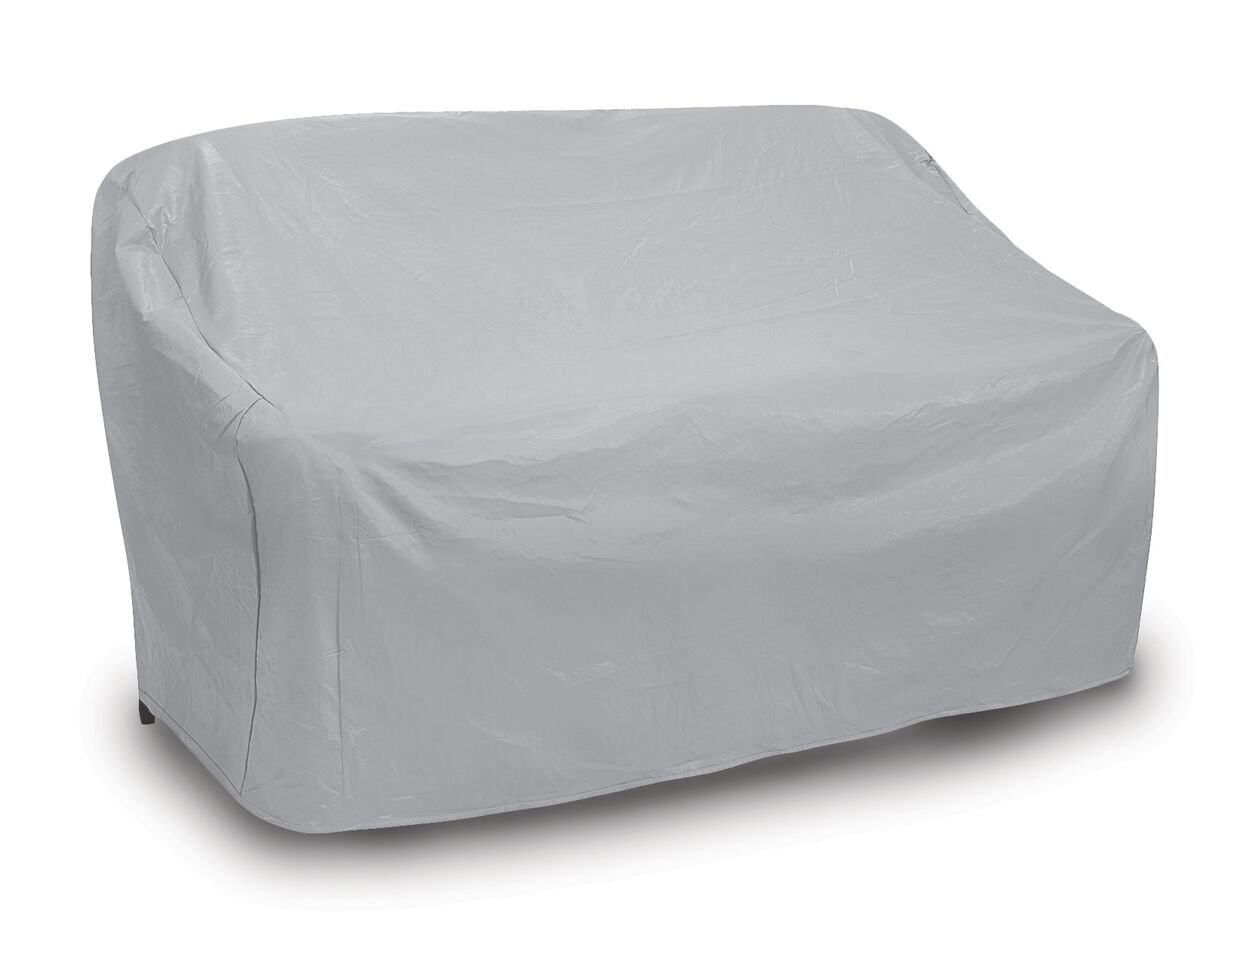 Protective Covers Weatherproof 3 Seat Wicker/Rattan Sofa Cover, X Large, Gray